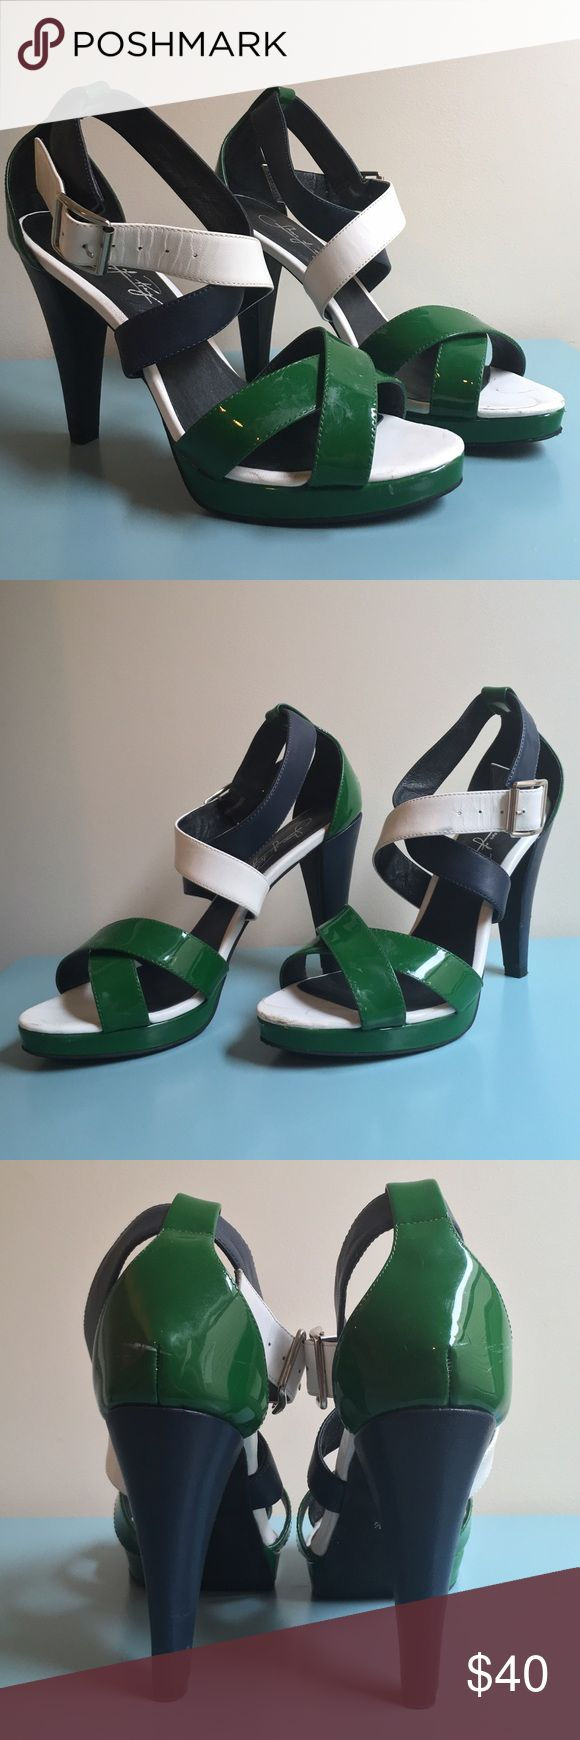 Navy Green and White Strappy Heels These shoes were originally custom made. They have  emerald green, navy blue, and white aspects. The shoe is clearly worn as can be seen in the pics, with some stains and scratches. Theyre high quality shoes though. Shoes Heels